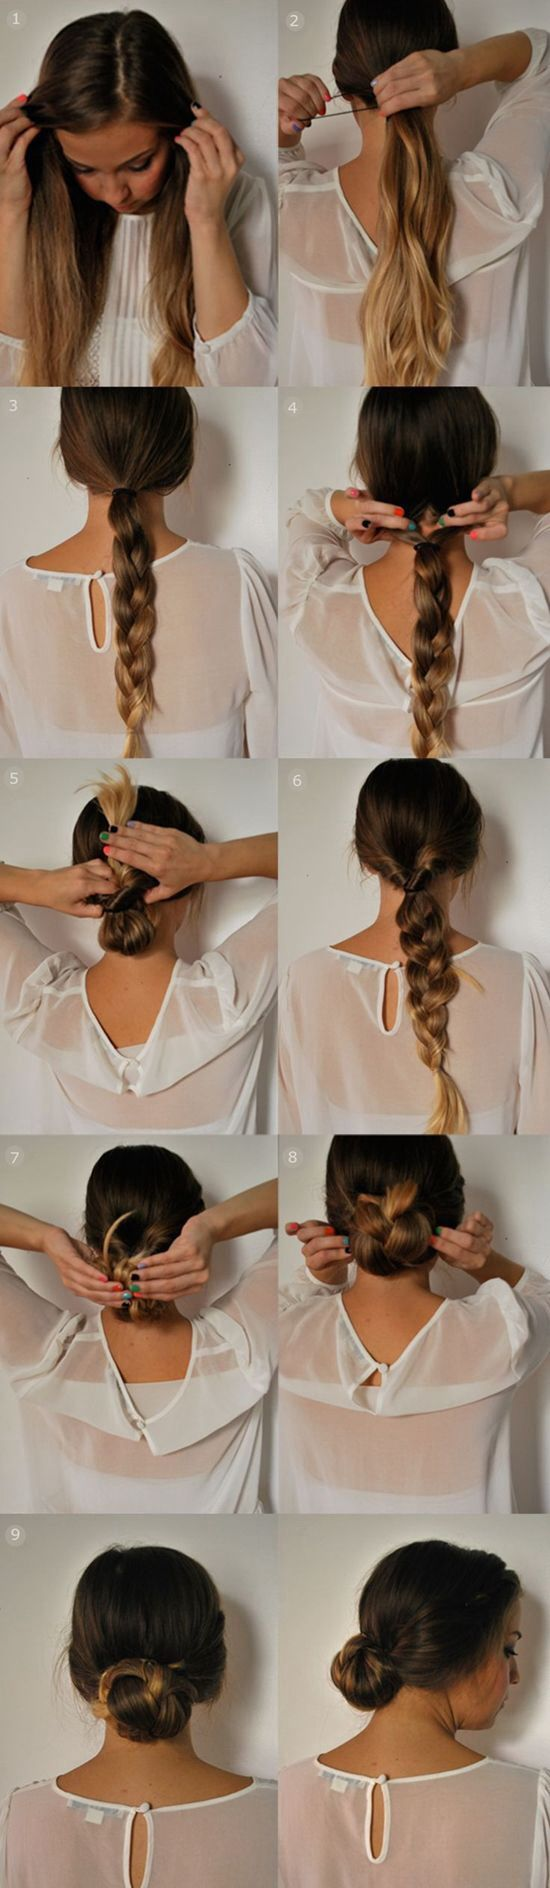 best hair images on pinterest hair makeup make up looks and my